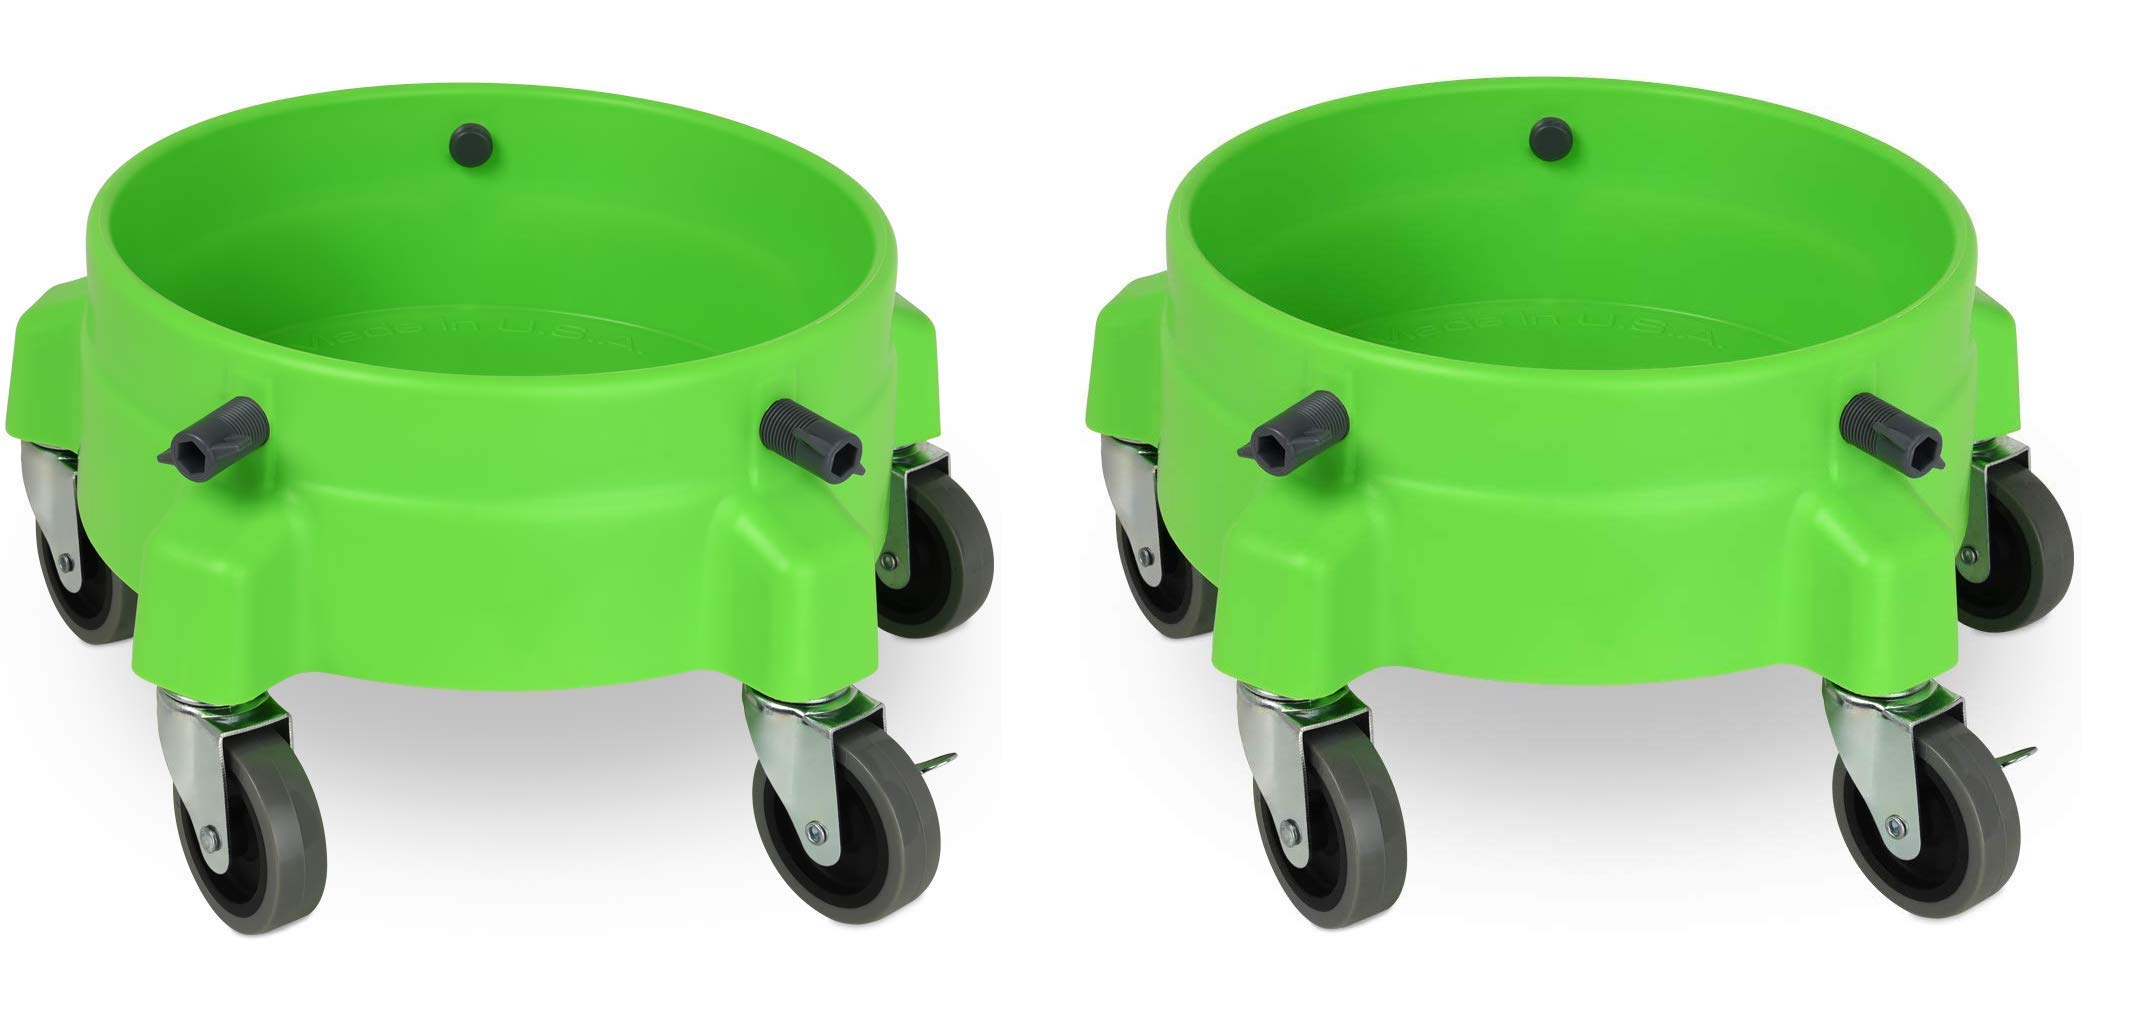 Liquid X Original Bucket Dolly - Lime Green with 3'' Gray Casters (Set of 2 Dollies)